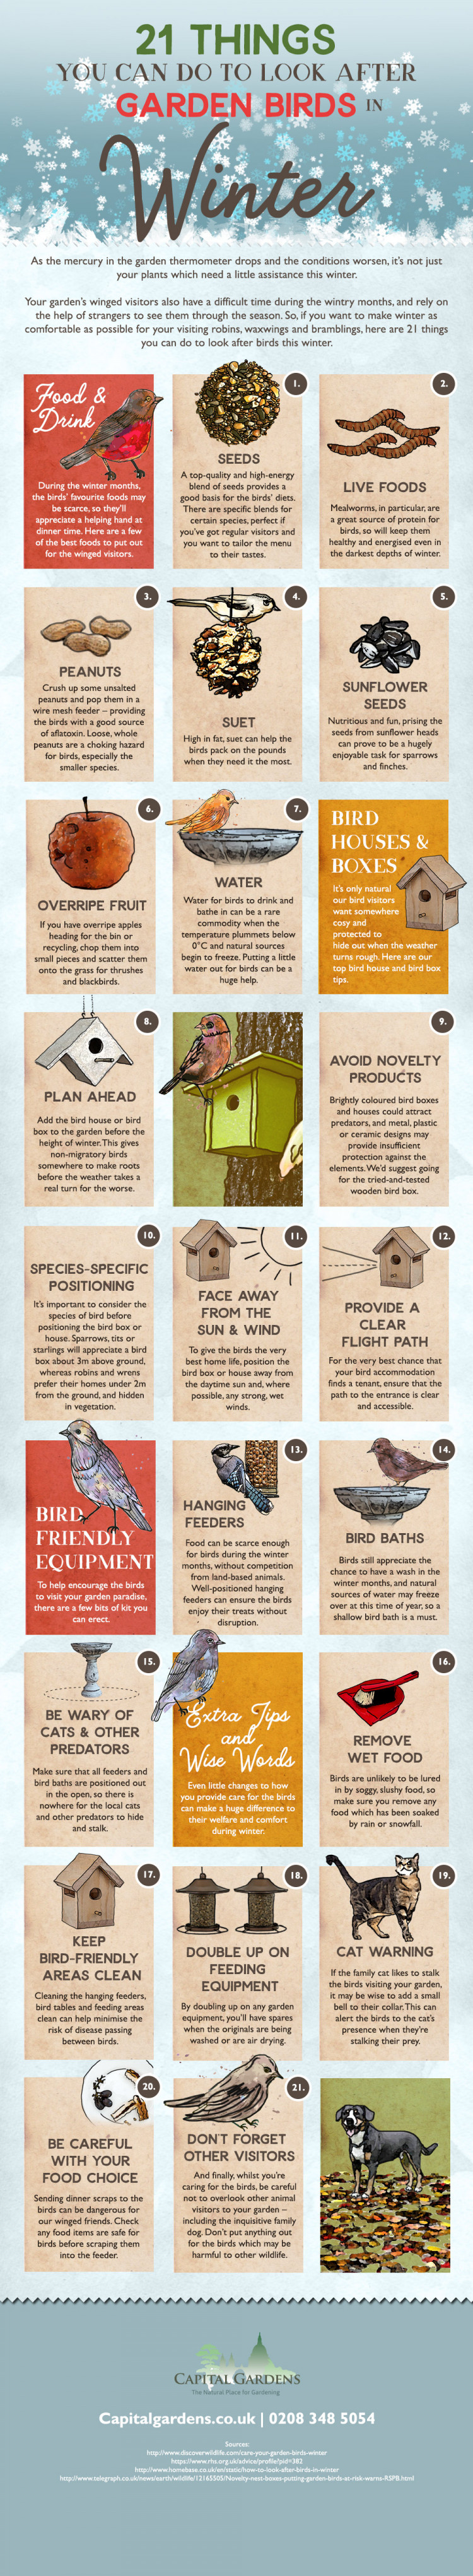 21 Things You Can Do to Look After Garden Birds in Winter